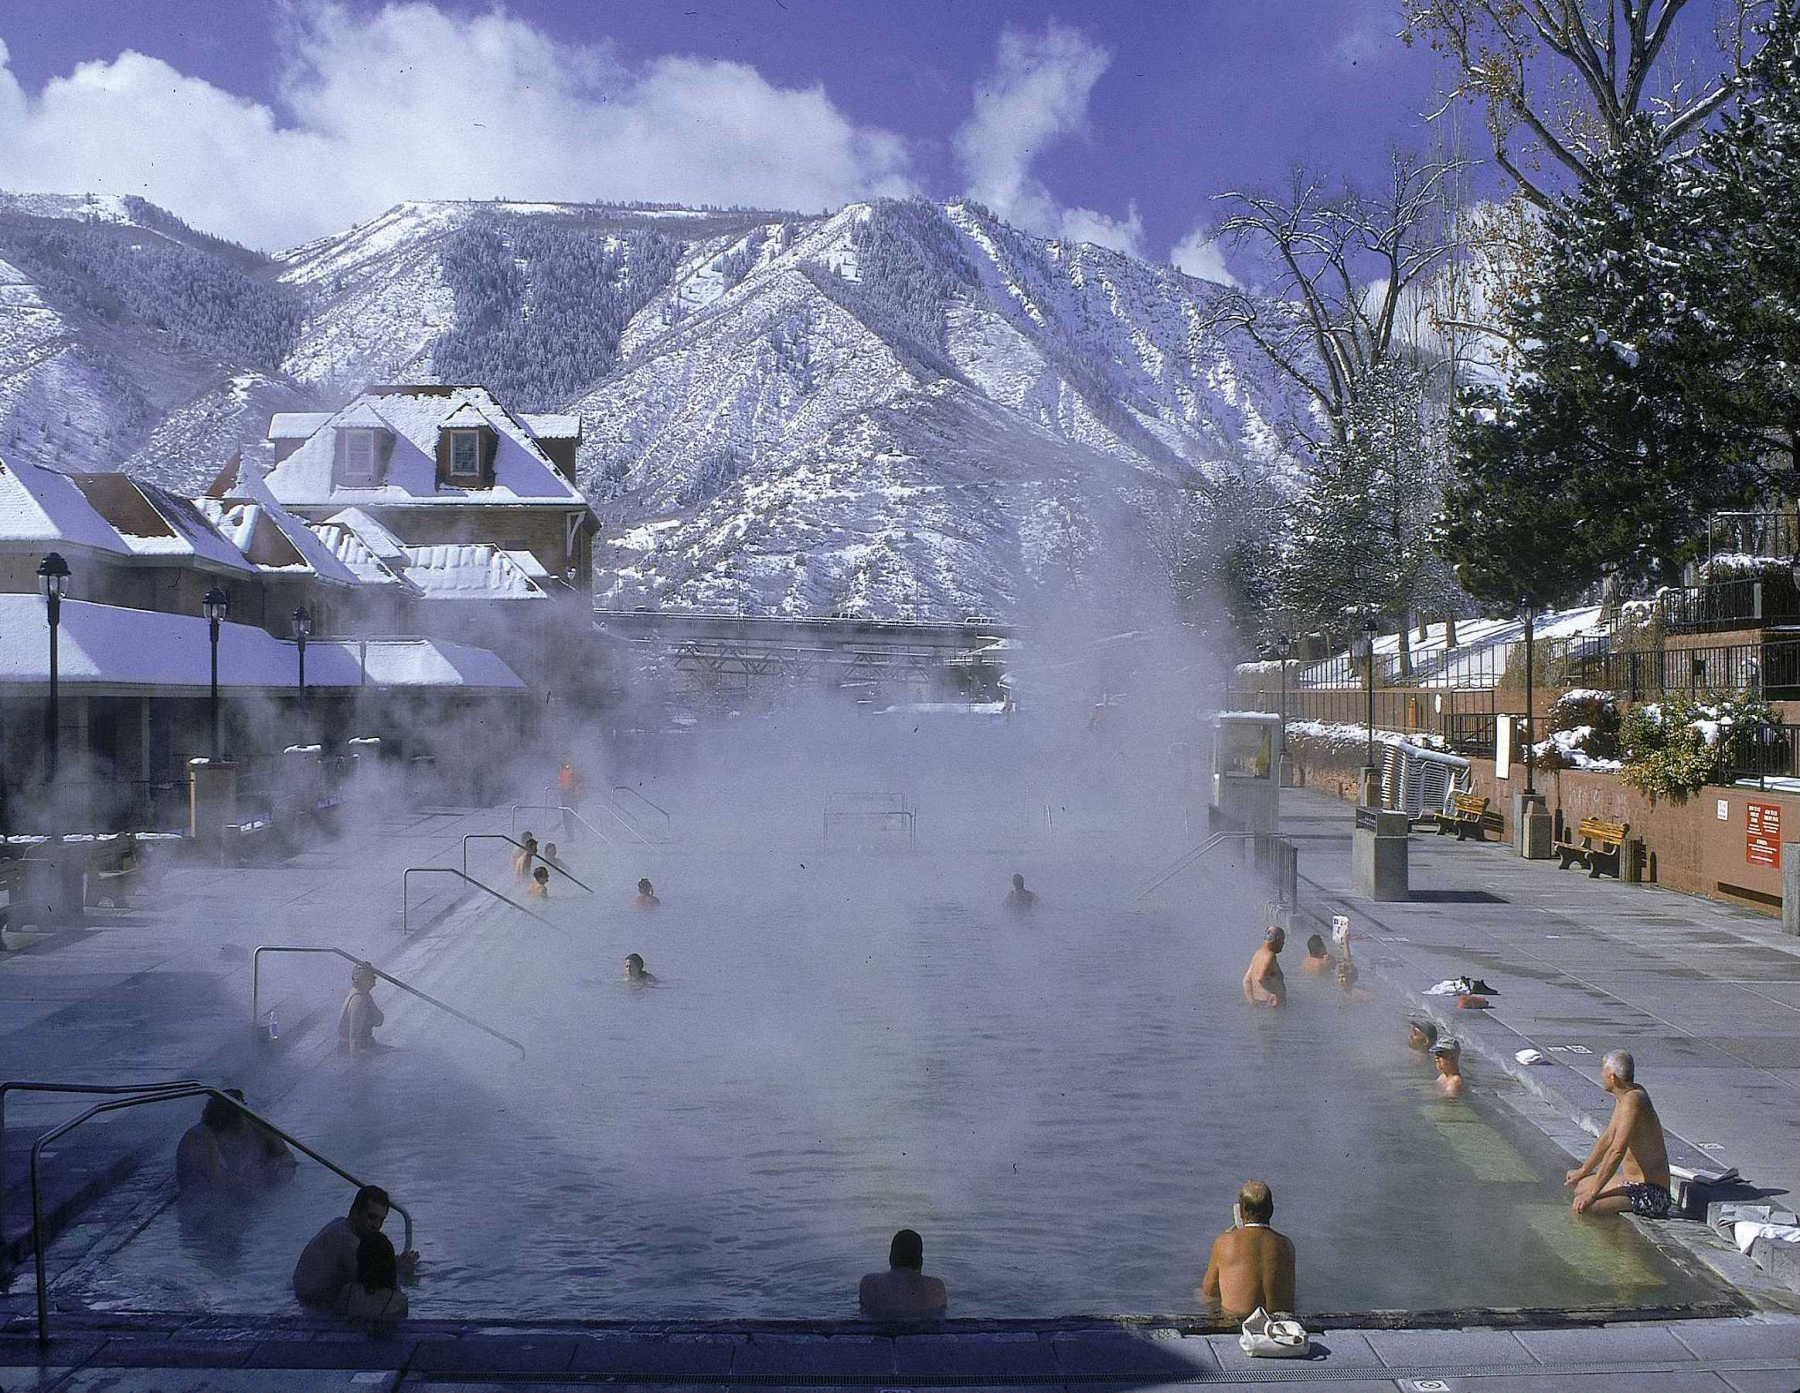 World's largest mineral hot springs pool, Glenwood Hot Springs Resort, Glenwood Springs, Colorado. As big as a football field, it also has two tube runs.